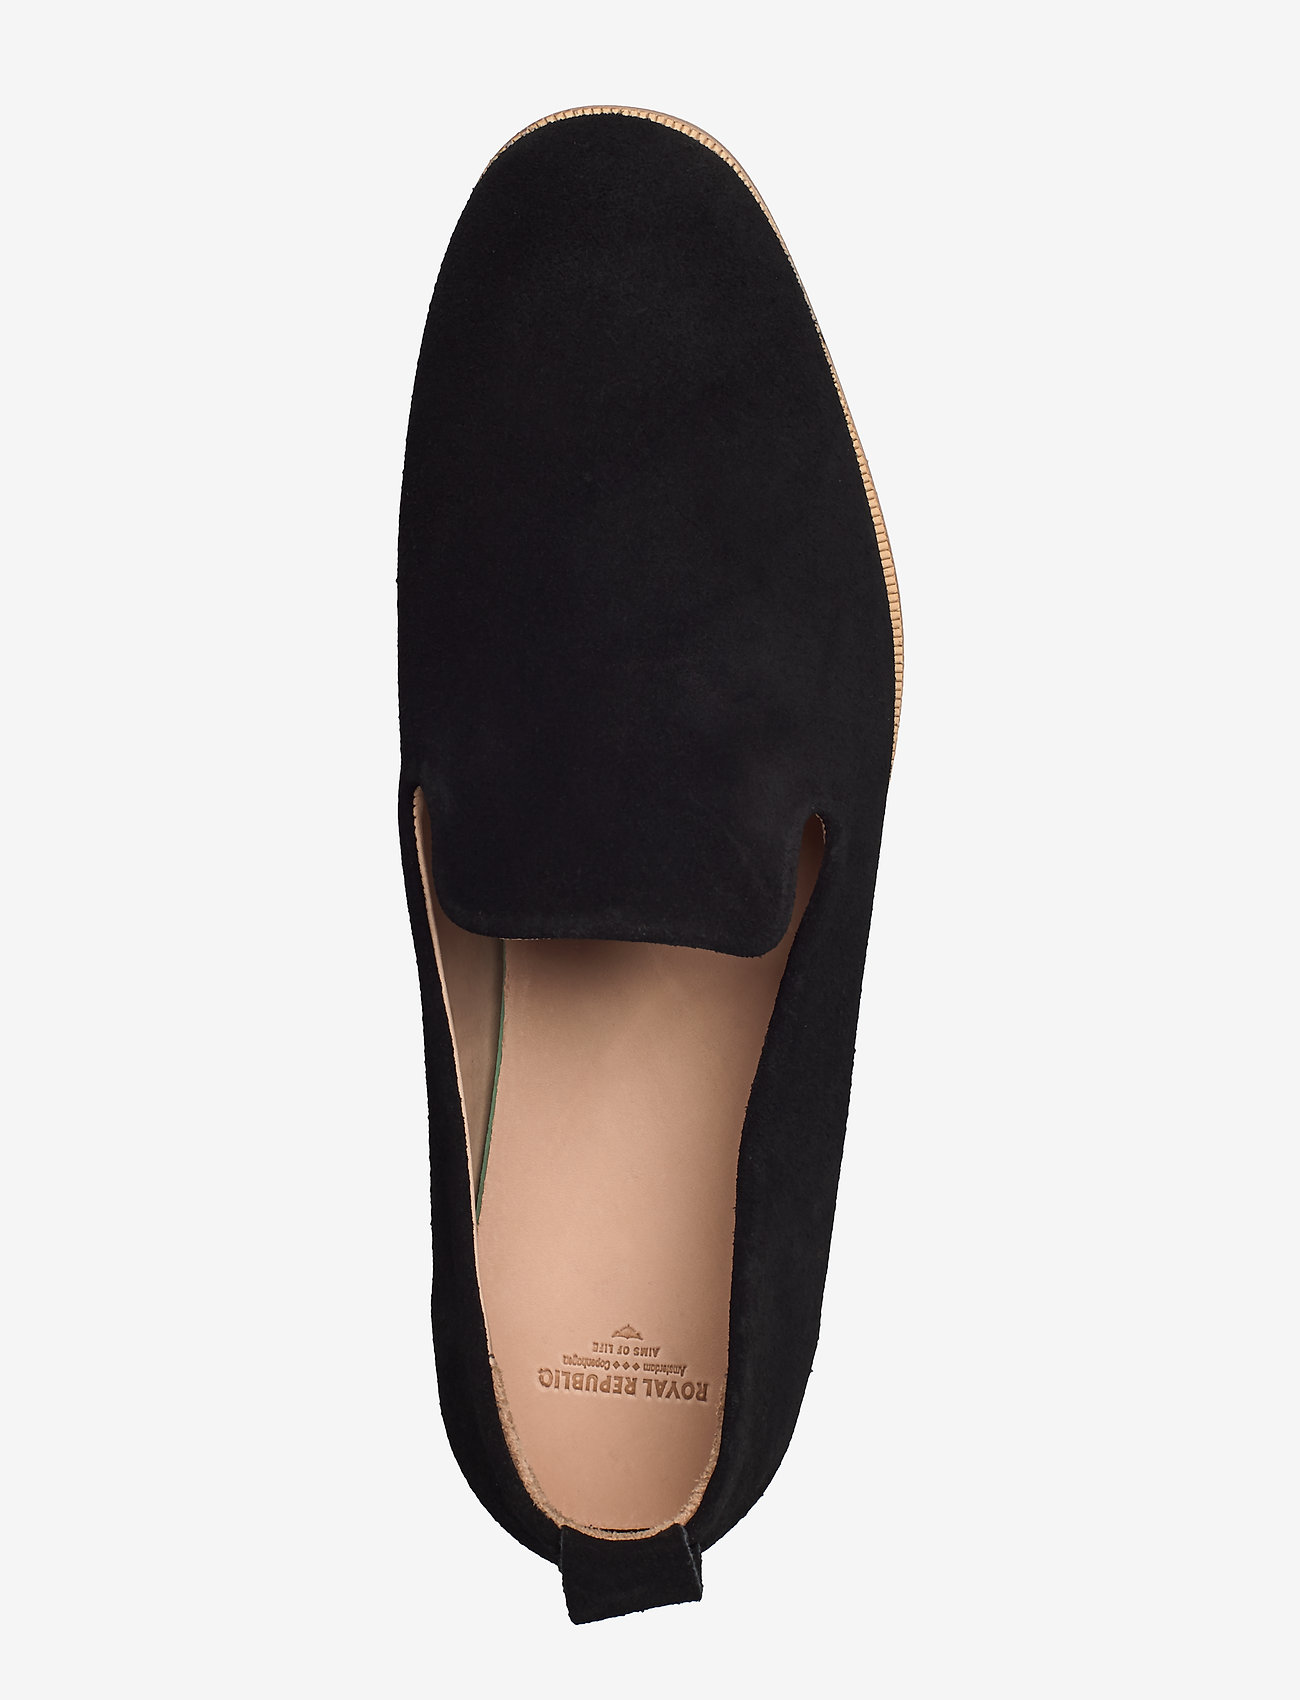 Royal RepubliQ Evo Suede Loafer - Loafers BLACK - Schuhe Billige